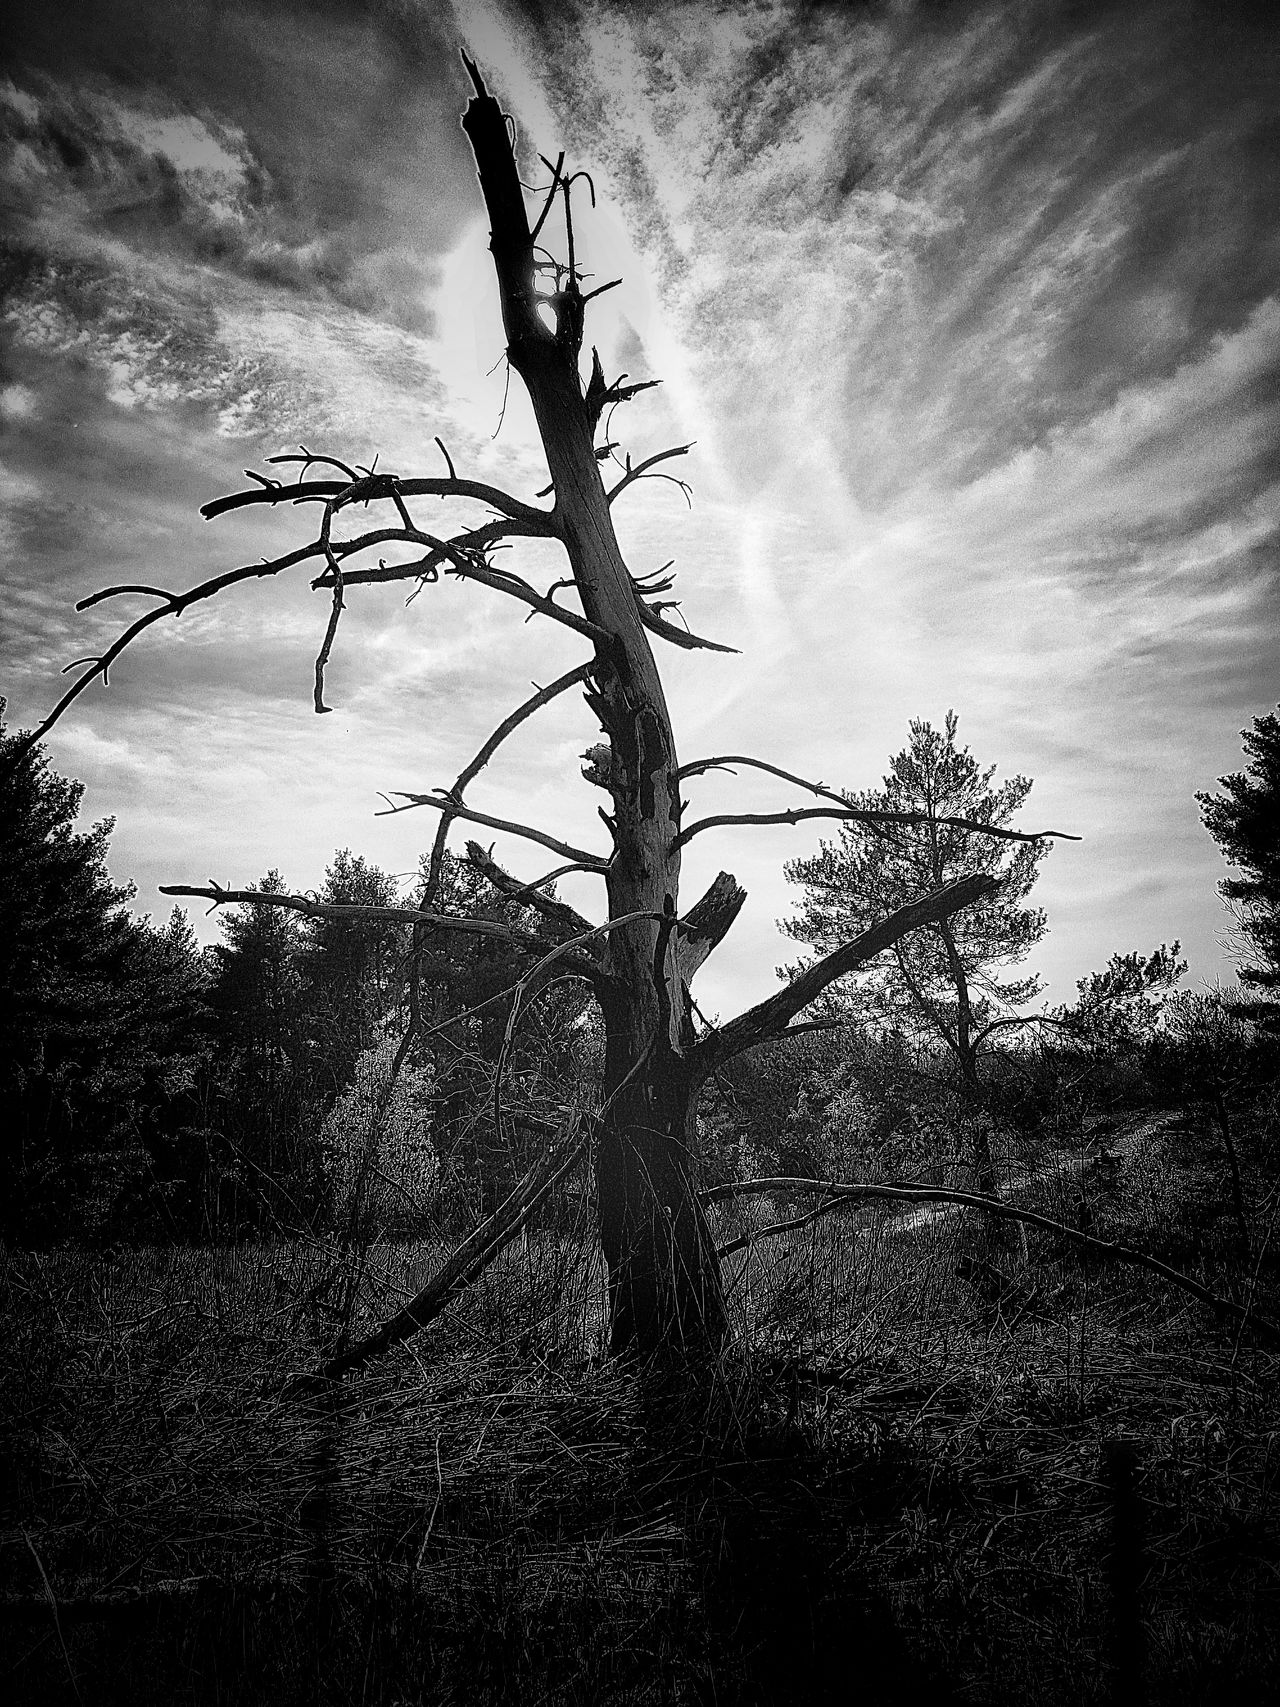 Tree Growth Sky Low Angle View Silhouette Nature Outdoors No People Day Beauty In Nature Close-up Blackandwhite